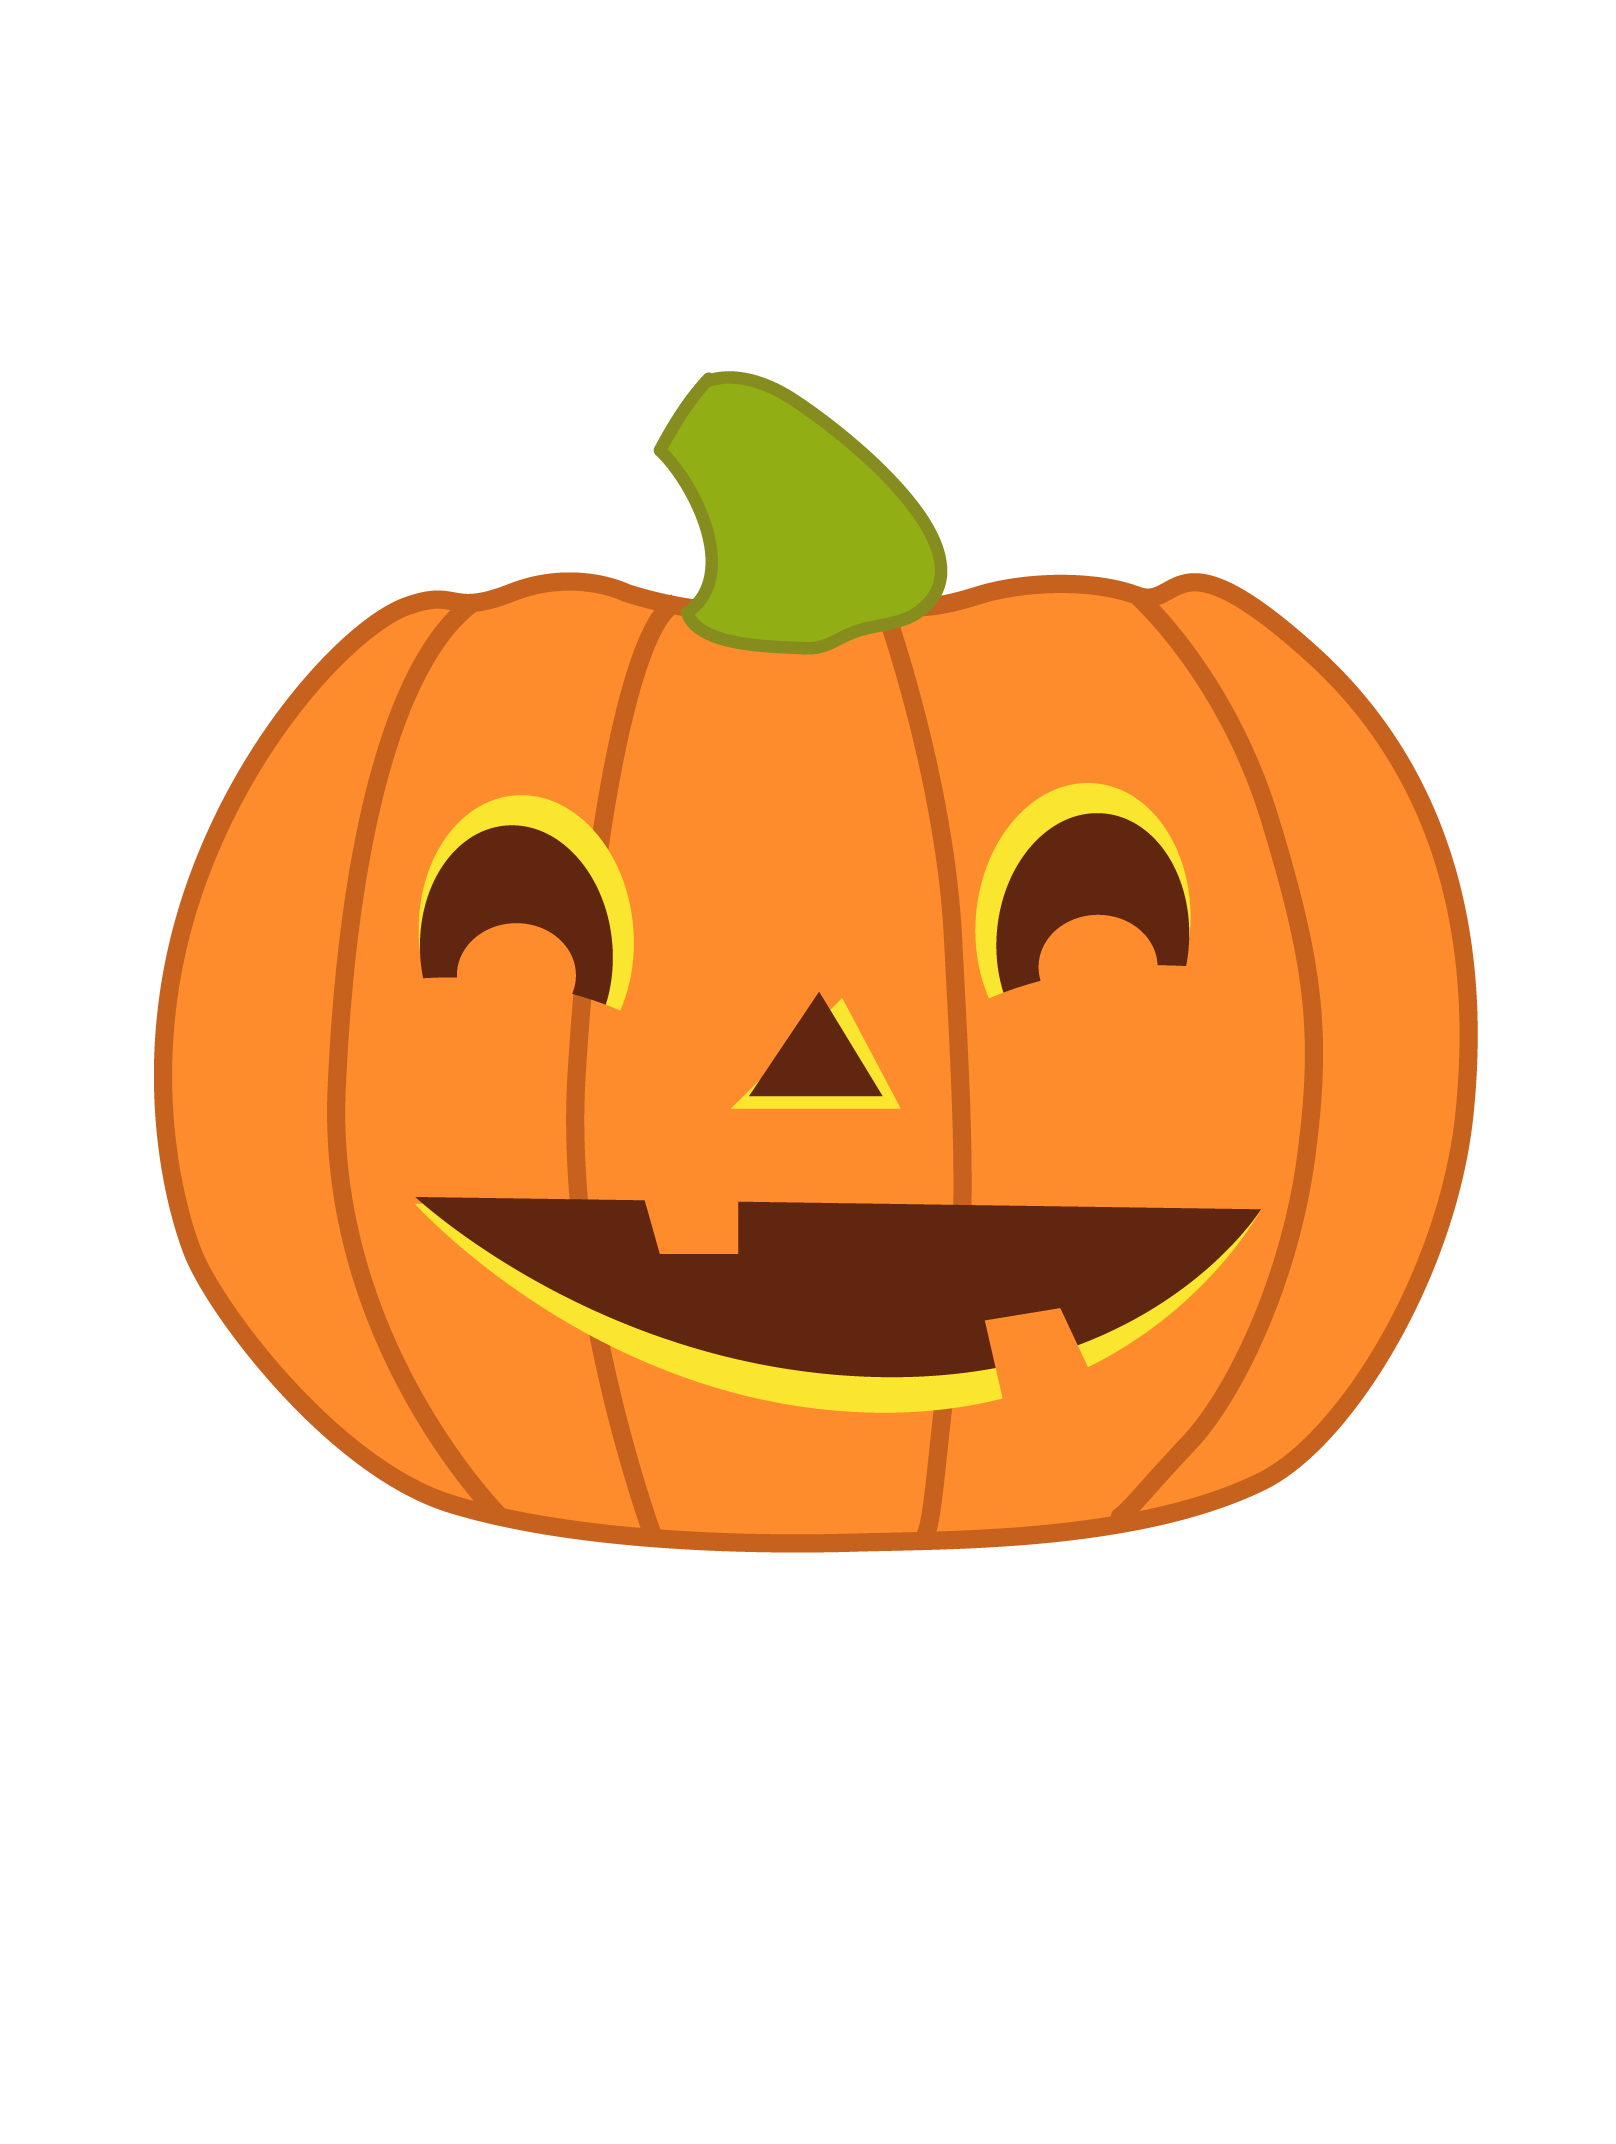 Cute halloween google search. Easy spooky pumpkin clipart black and white